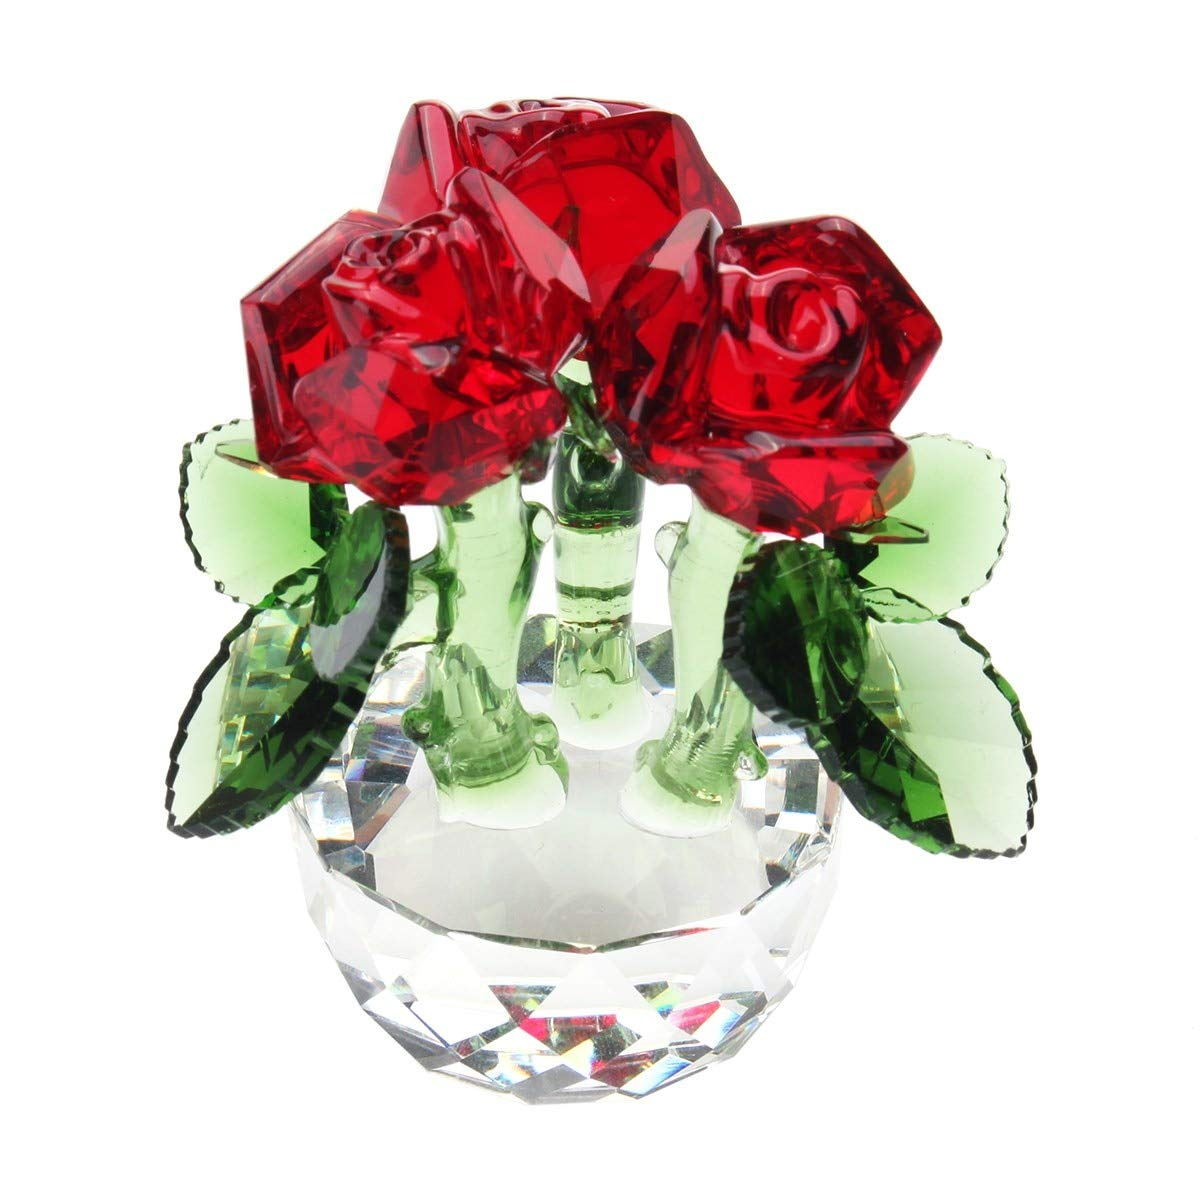 Gold Happy New Crystal Cut Glass Flower Decoration 70 x 55mm Figurines Rose Home Living Room Party Wedding Gift Souvenir Ornaments